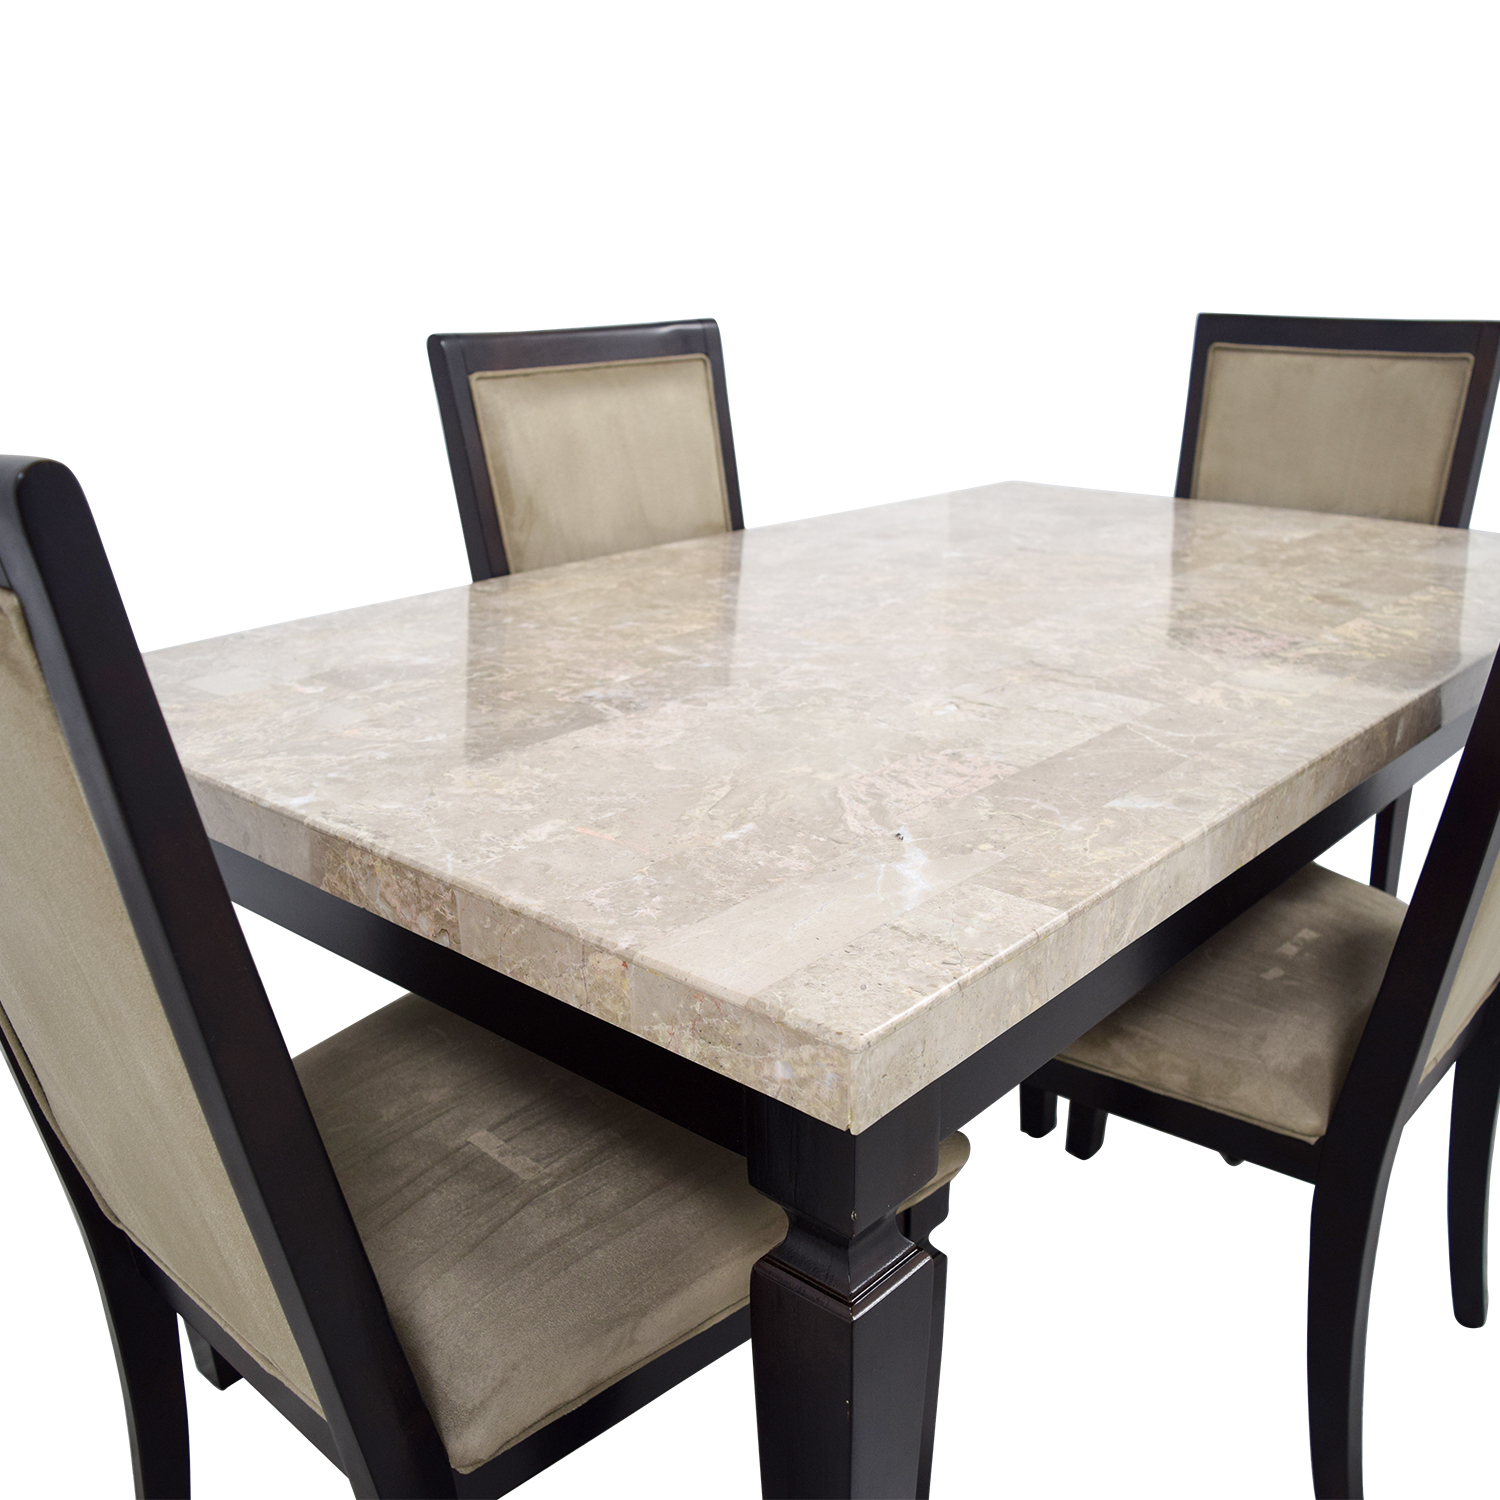 Raymour & Flanigan Raymour & Flanigan Rogue Marble Dining Set Dining Sets